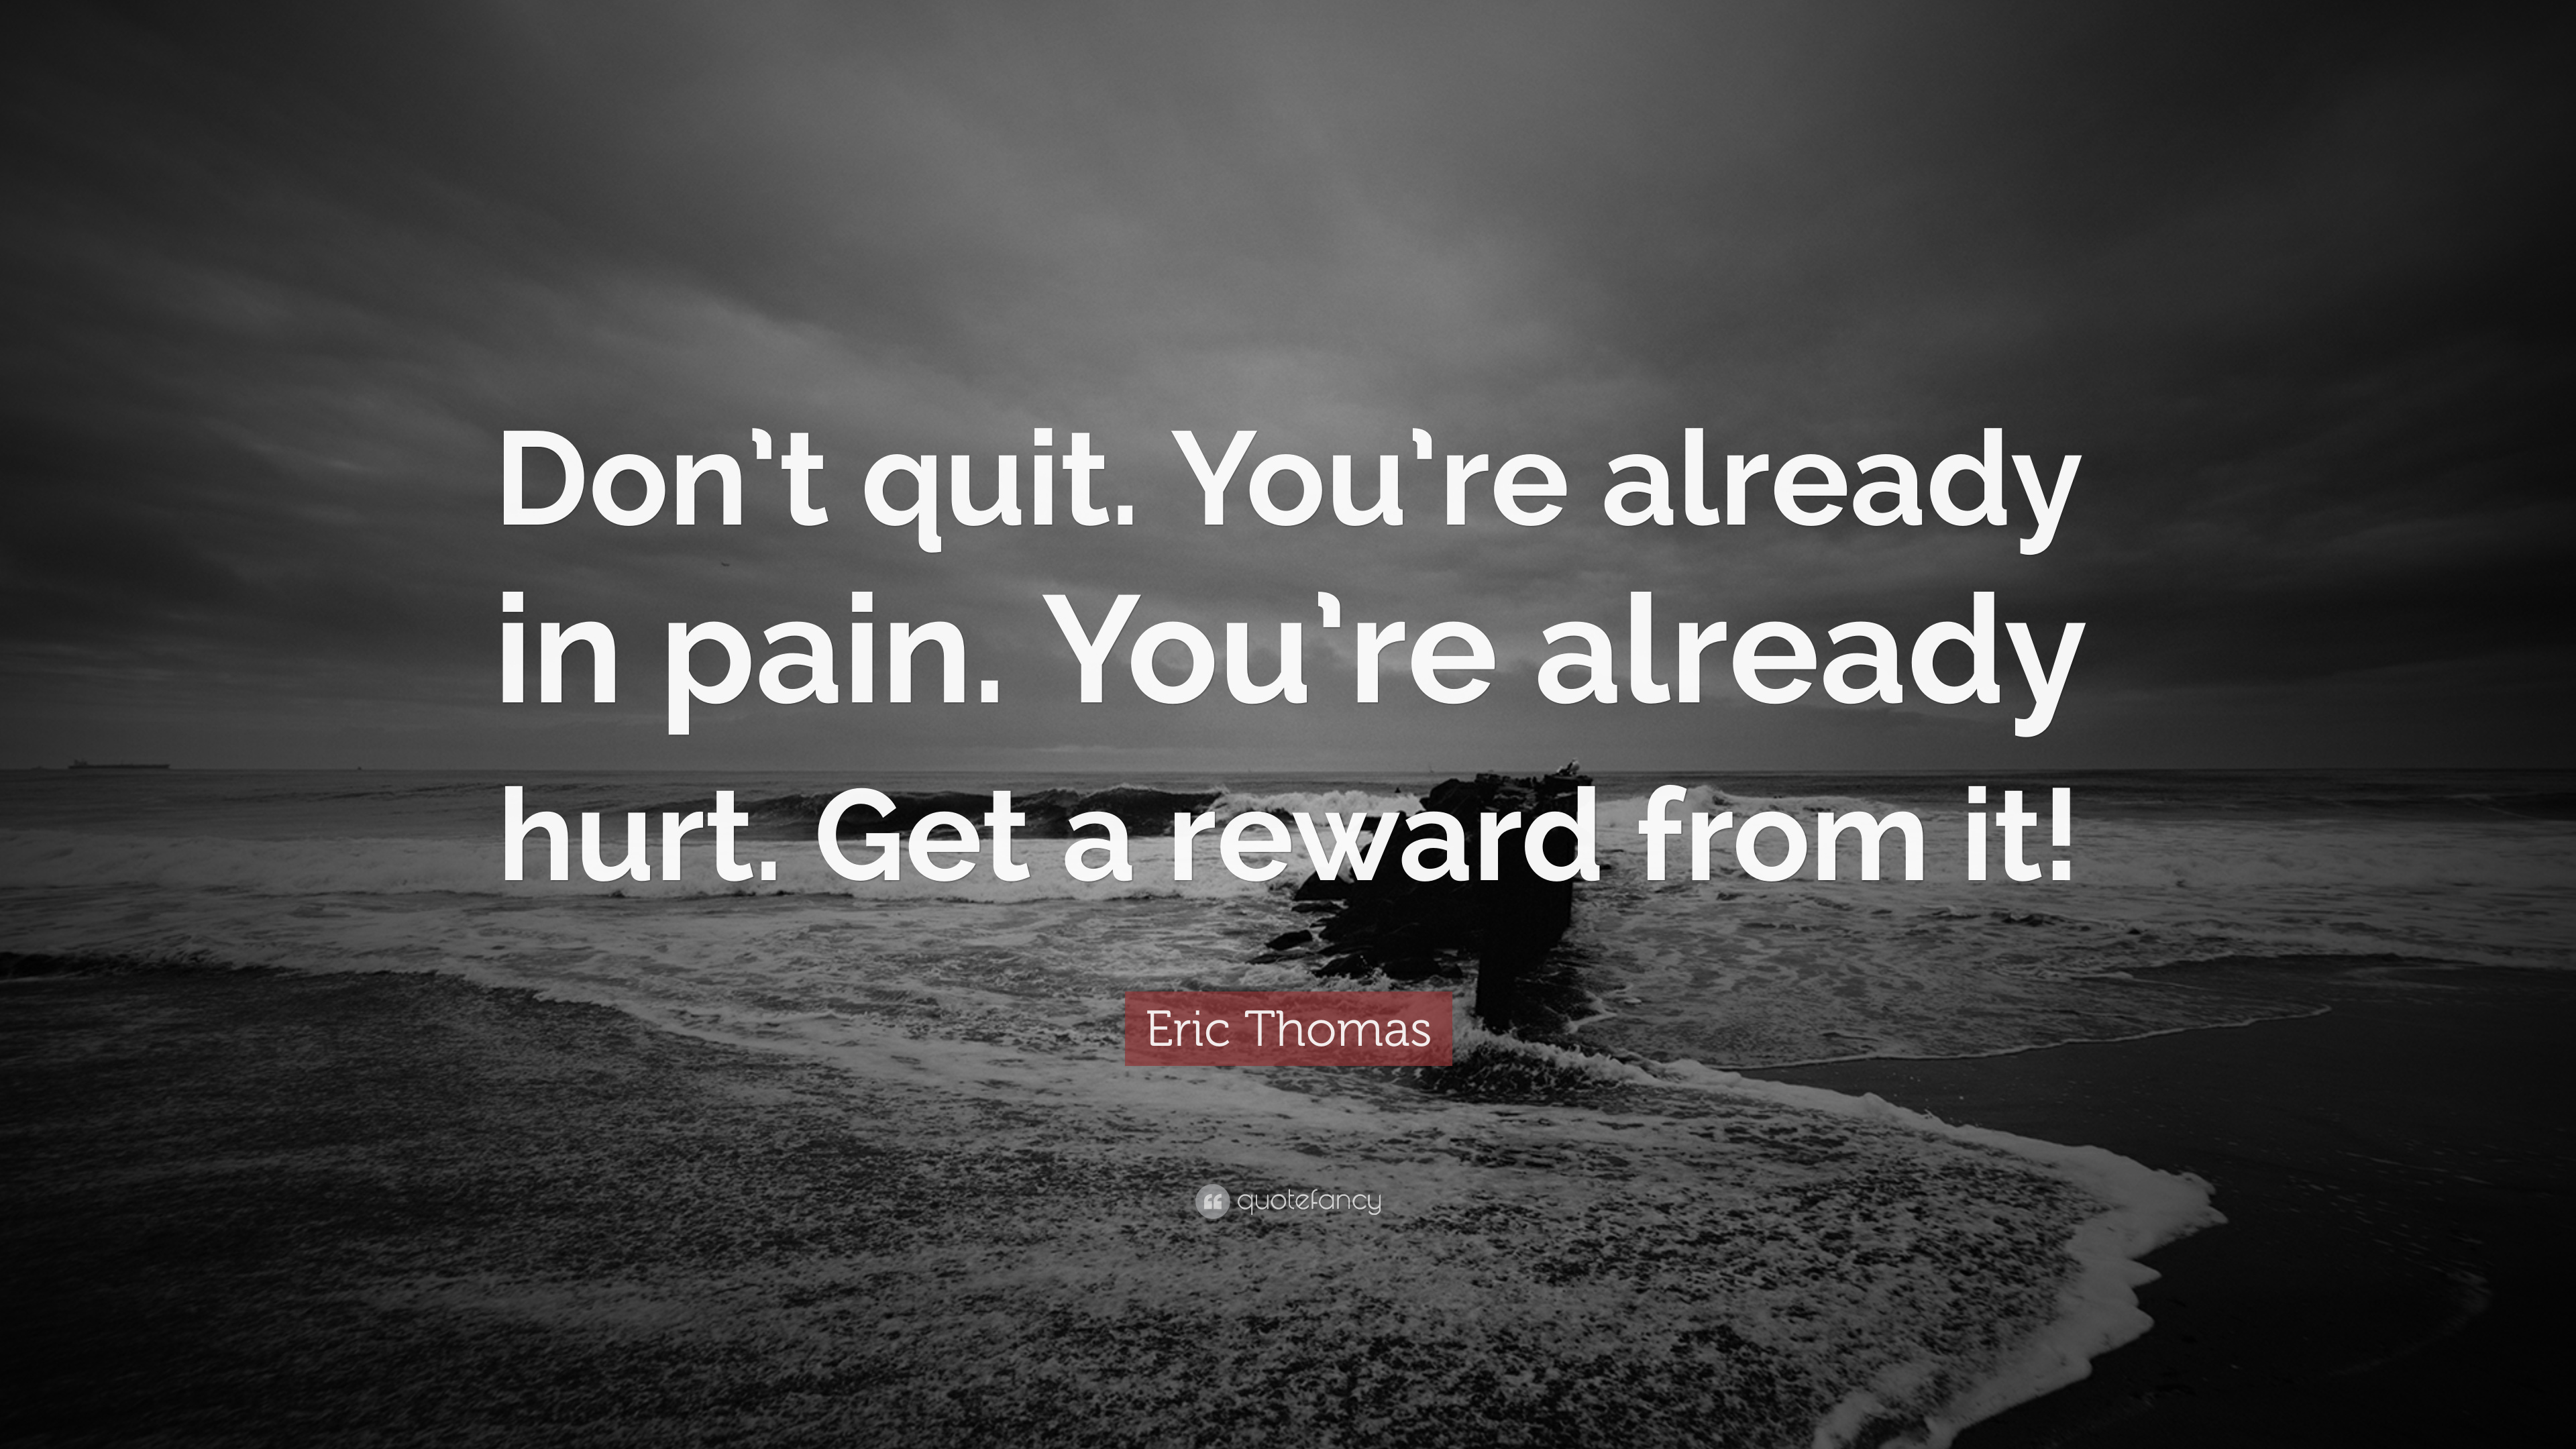 [Image] Keep believing in the dream and keep moving forward, go out and get what you're worth, pain is temporary, and eventually it'll subside and something better will take its place, if you quit however, it'll last forever.